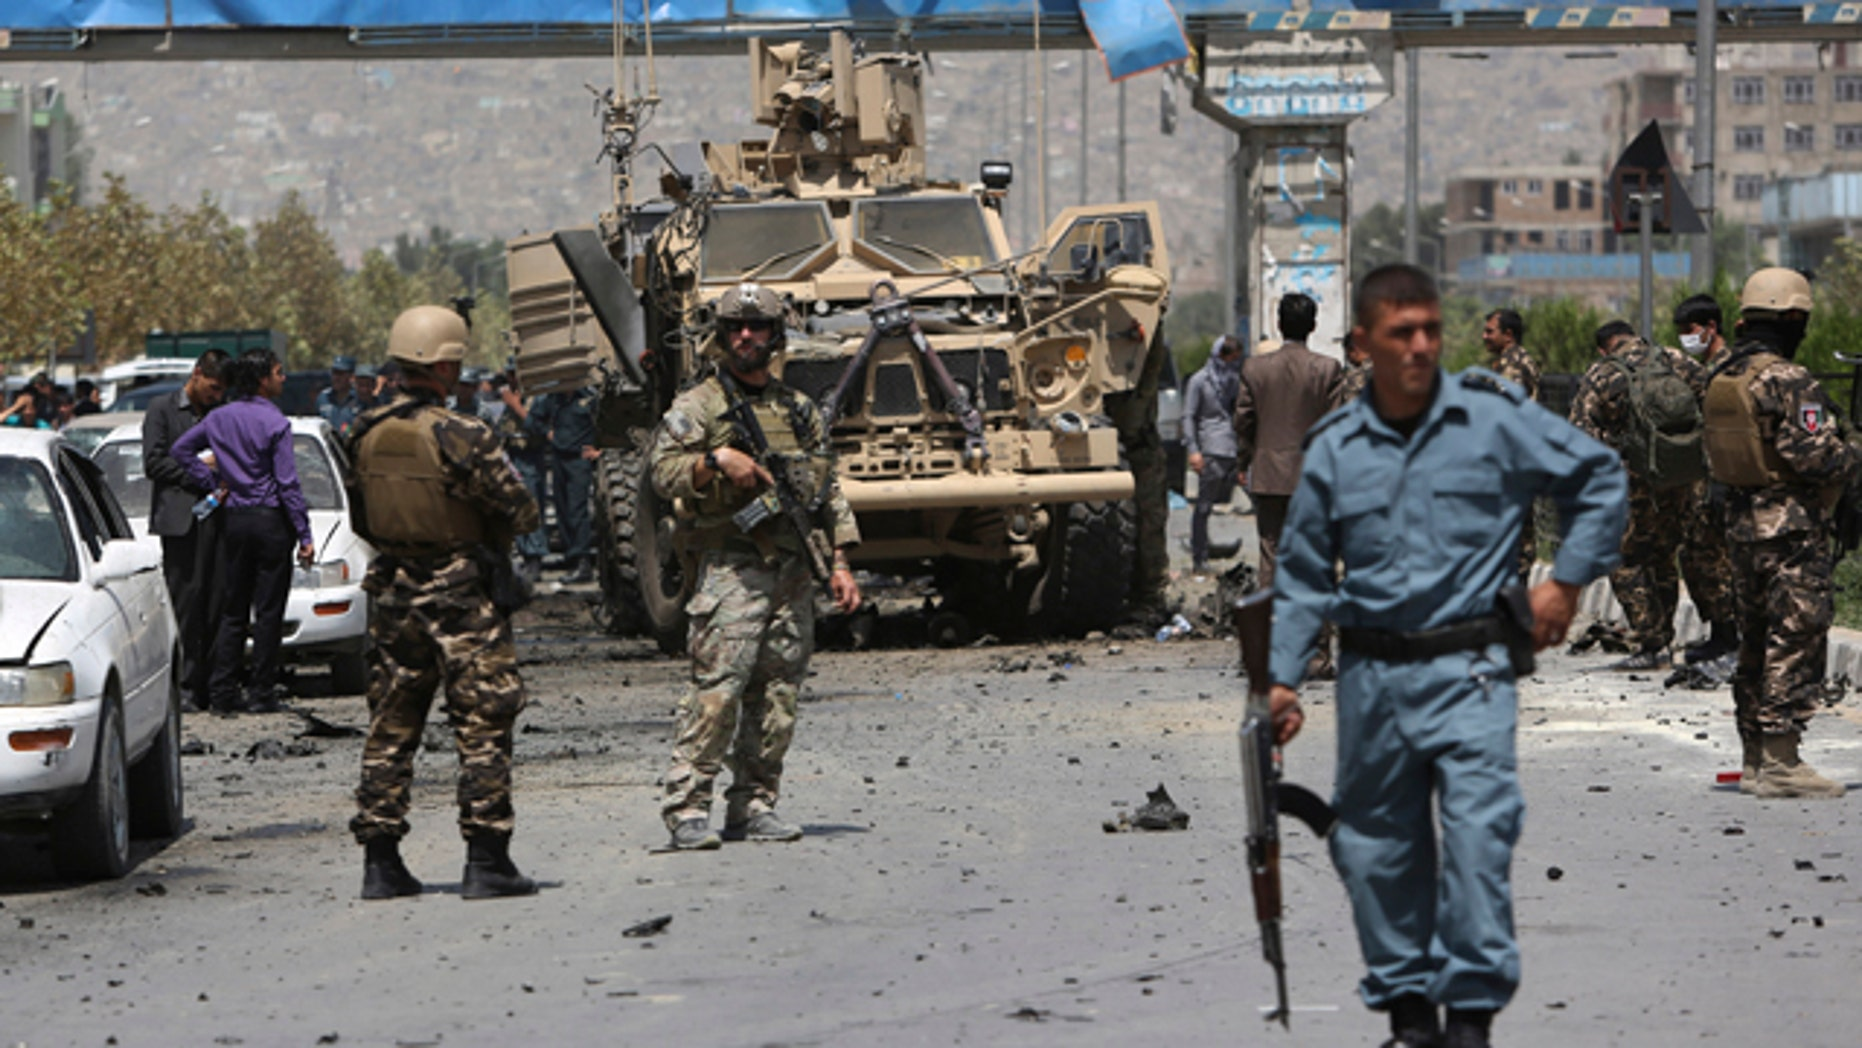 August 10, 2014: NATO and Afghan security forces stand guard at the site of a suicide attack in Kabul. A suicide car bomber attacked a NATO convoy, killing several civilians and wounding more than 35 in an assault claimed by the Taliban, authorities said. (AP Photo/Rahmat Gul)